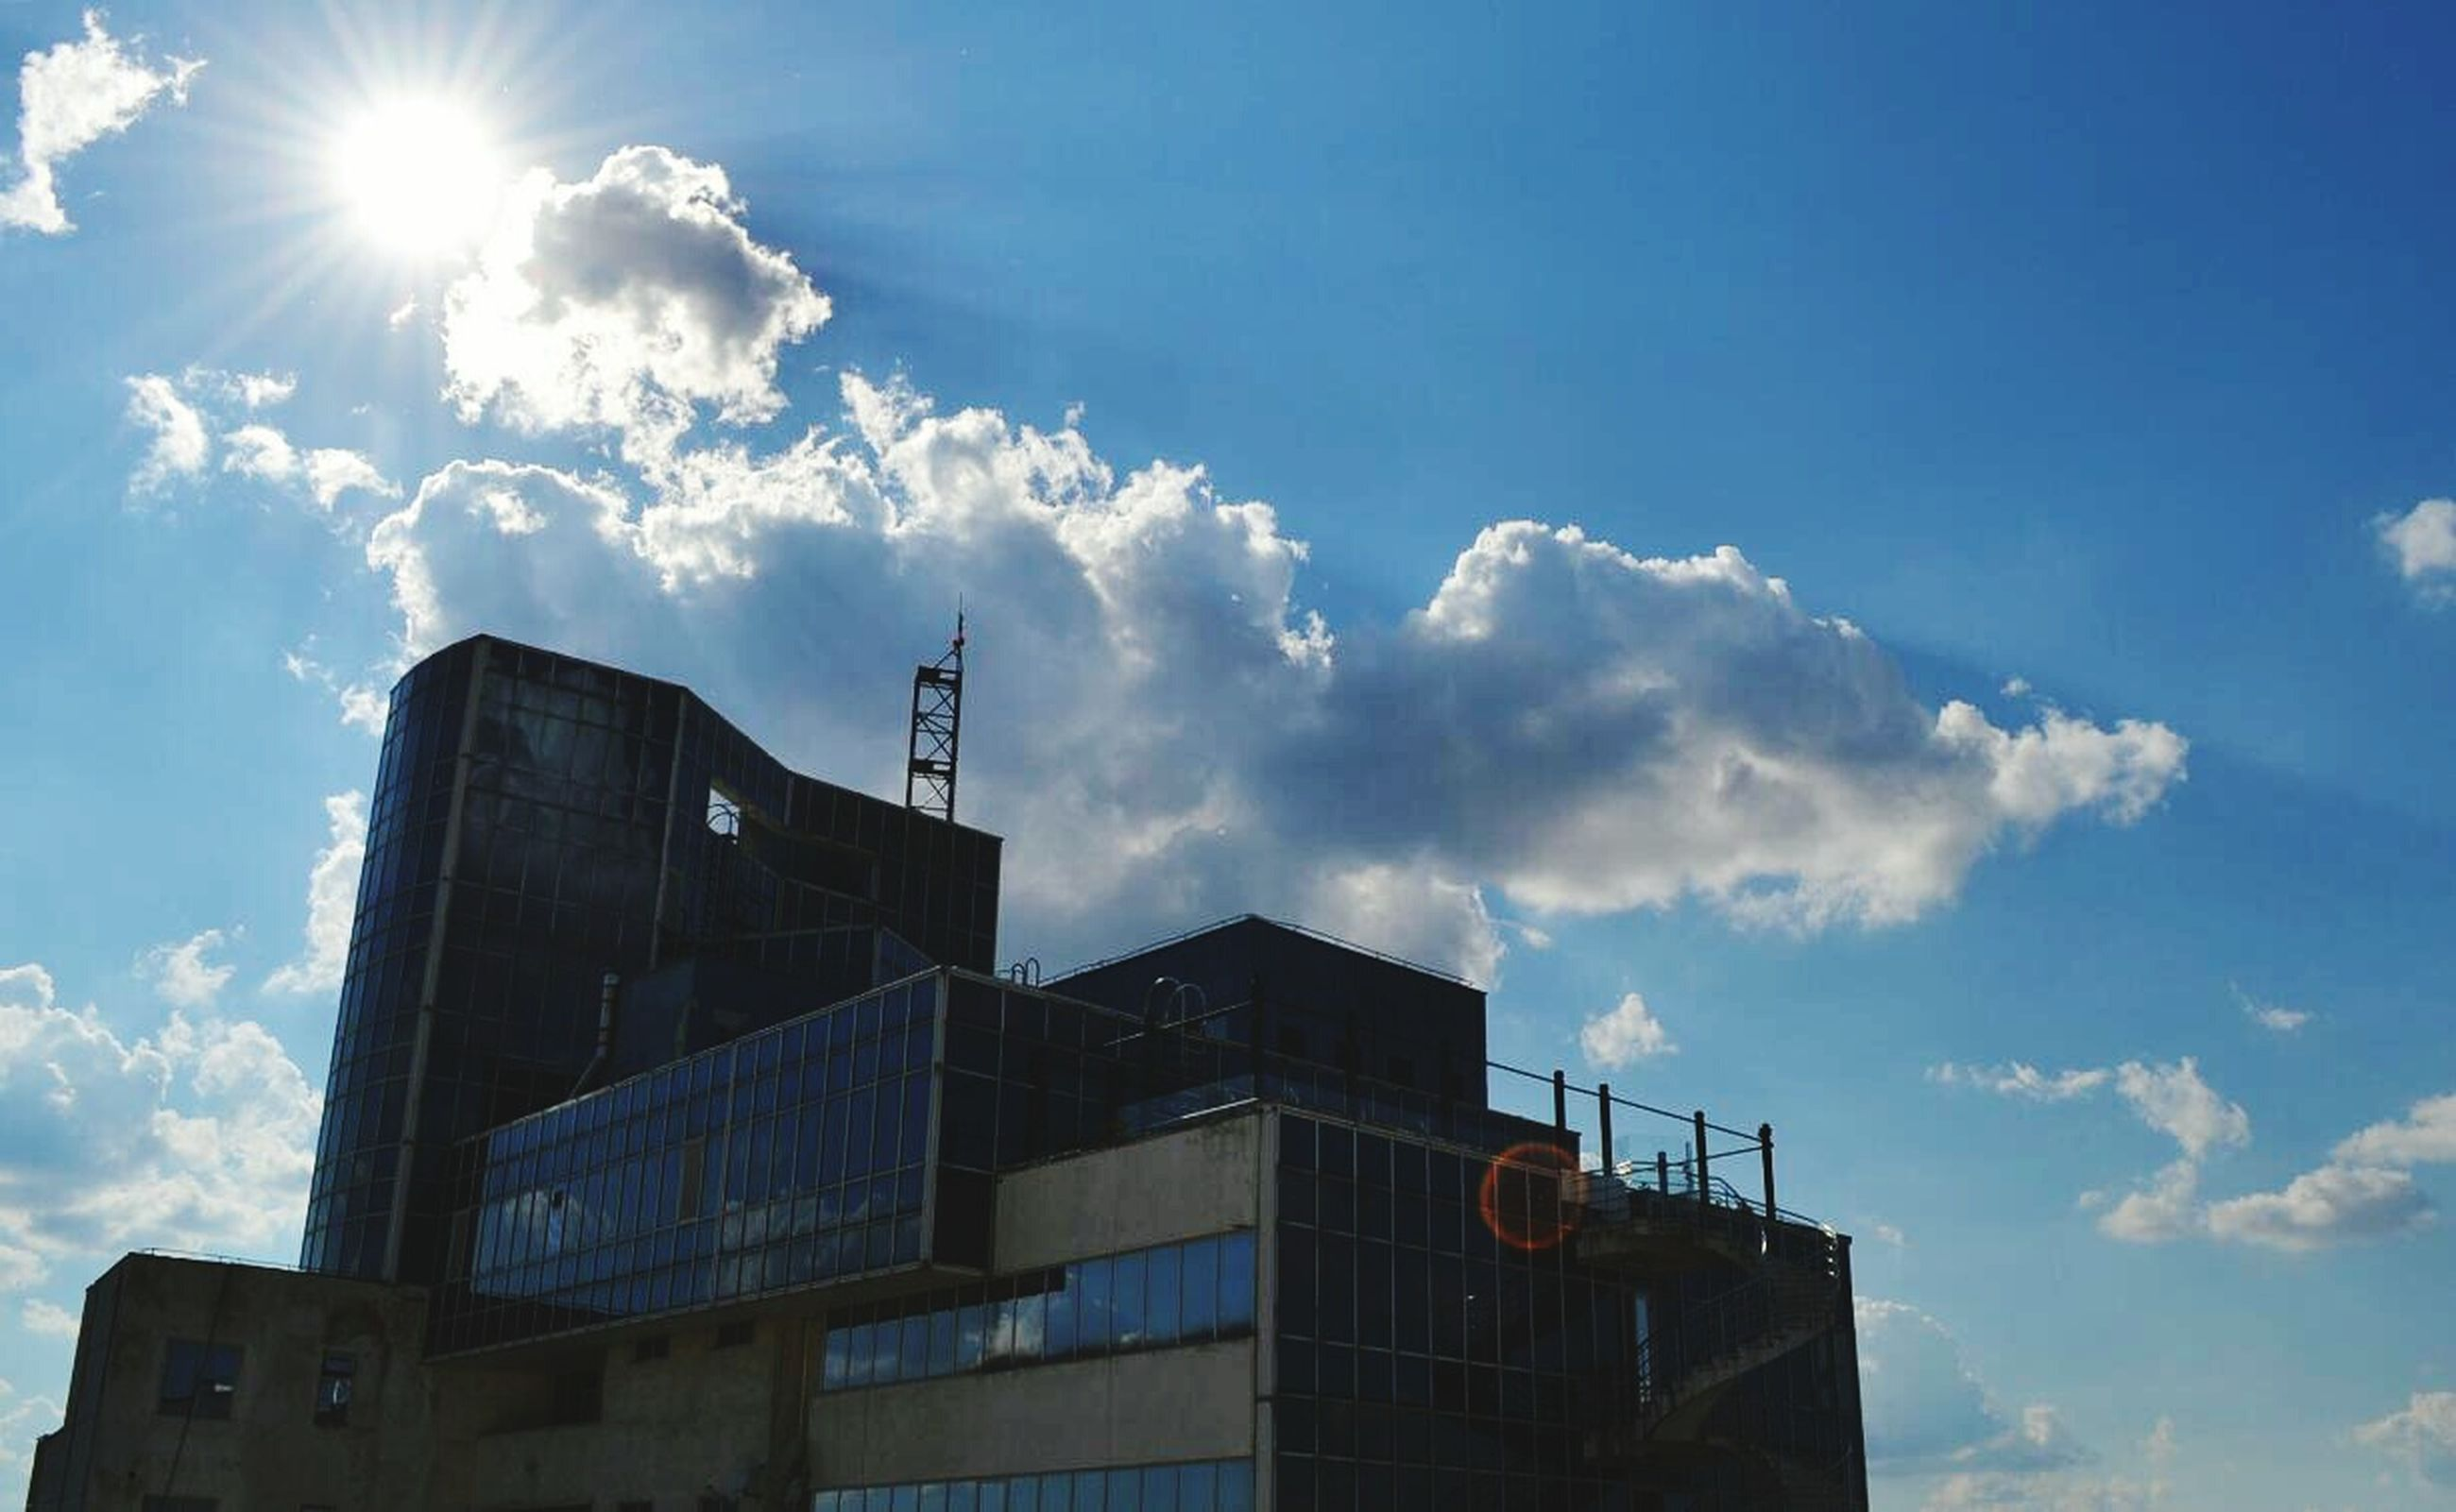 low angle view, building exterior, architecture, built structure, sun, sunbeam, sky, sunlight, blue, lens flare, sunny, building, day, cloud, city, cloud - sky, outdoors, no people, bright, high section